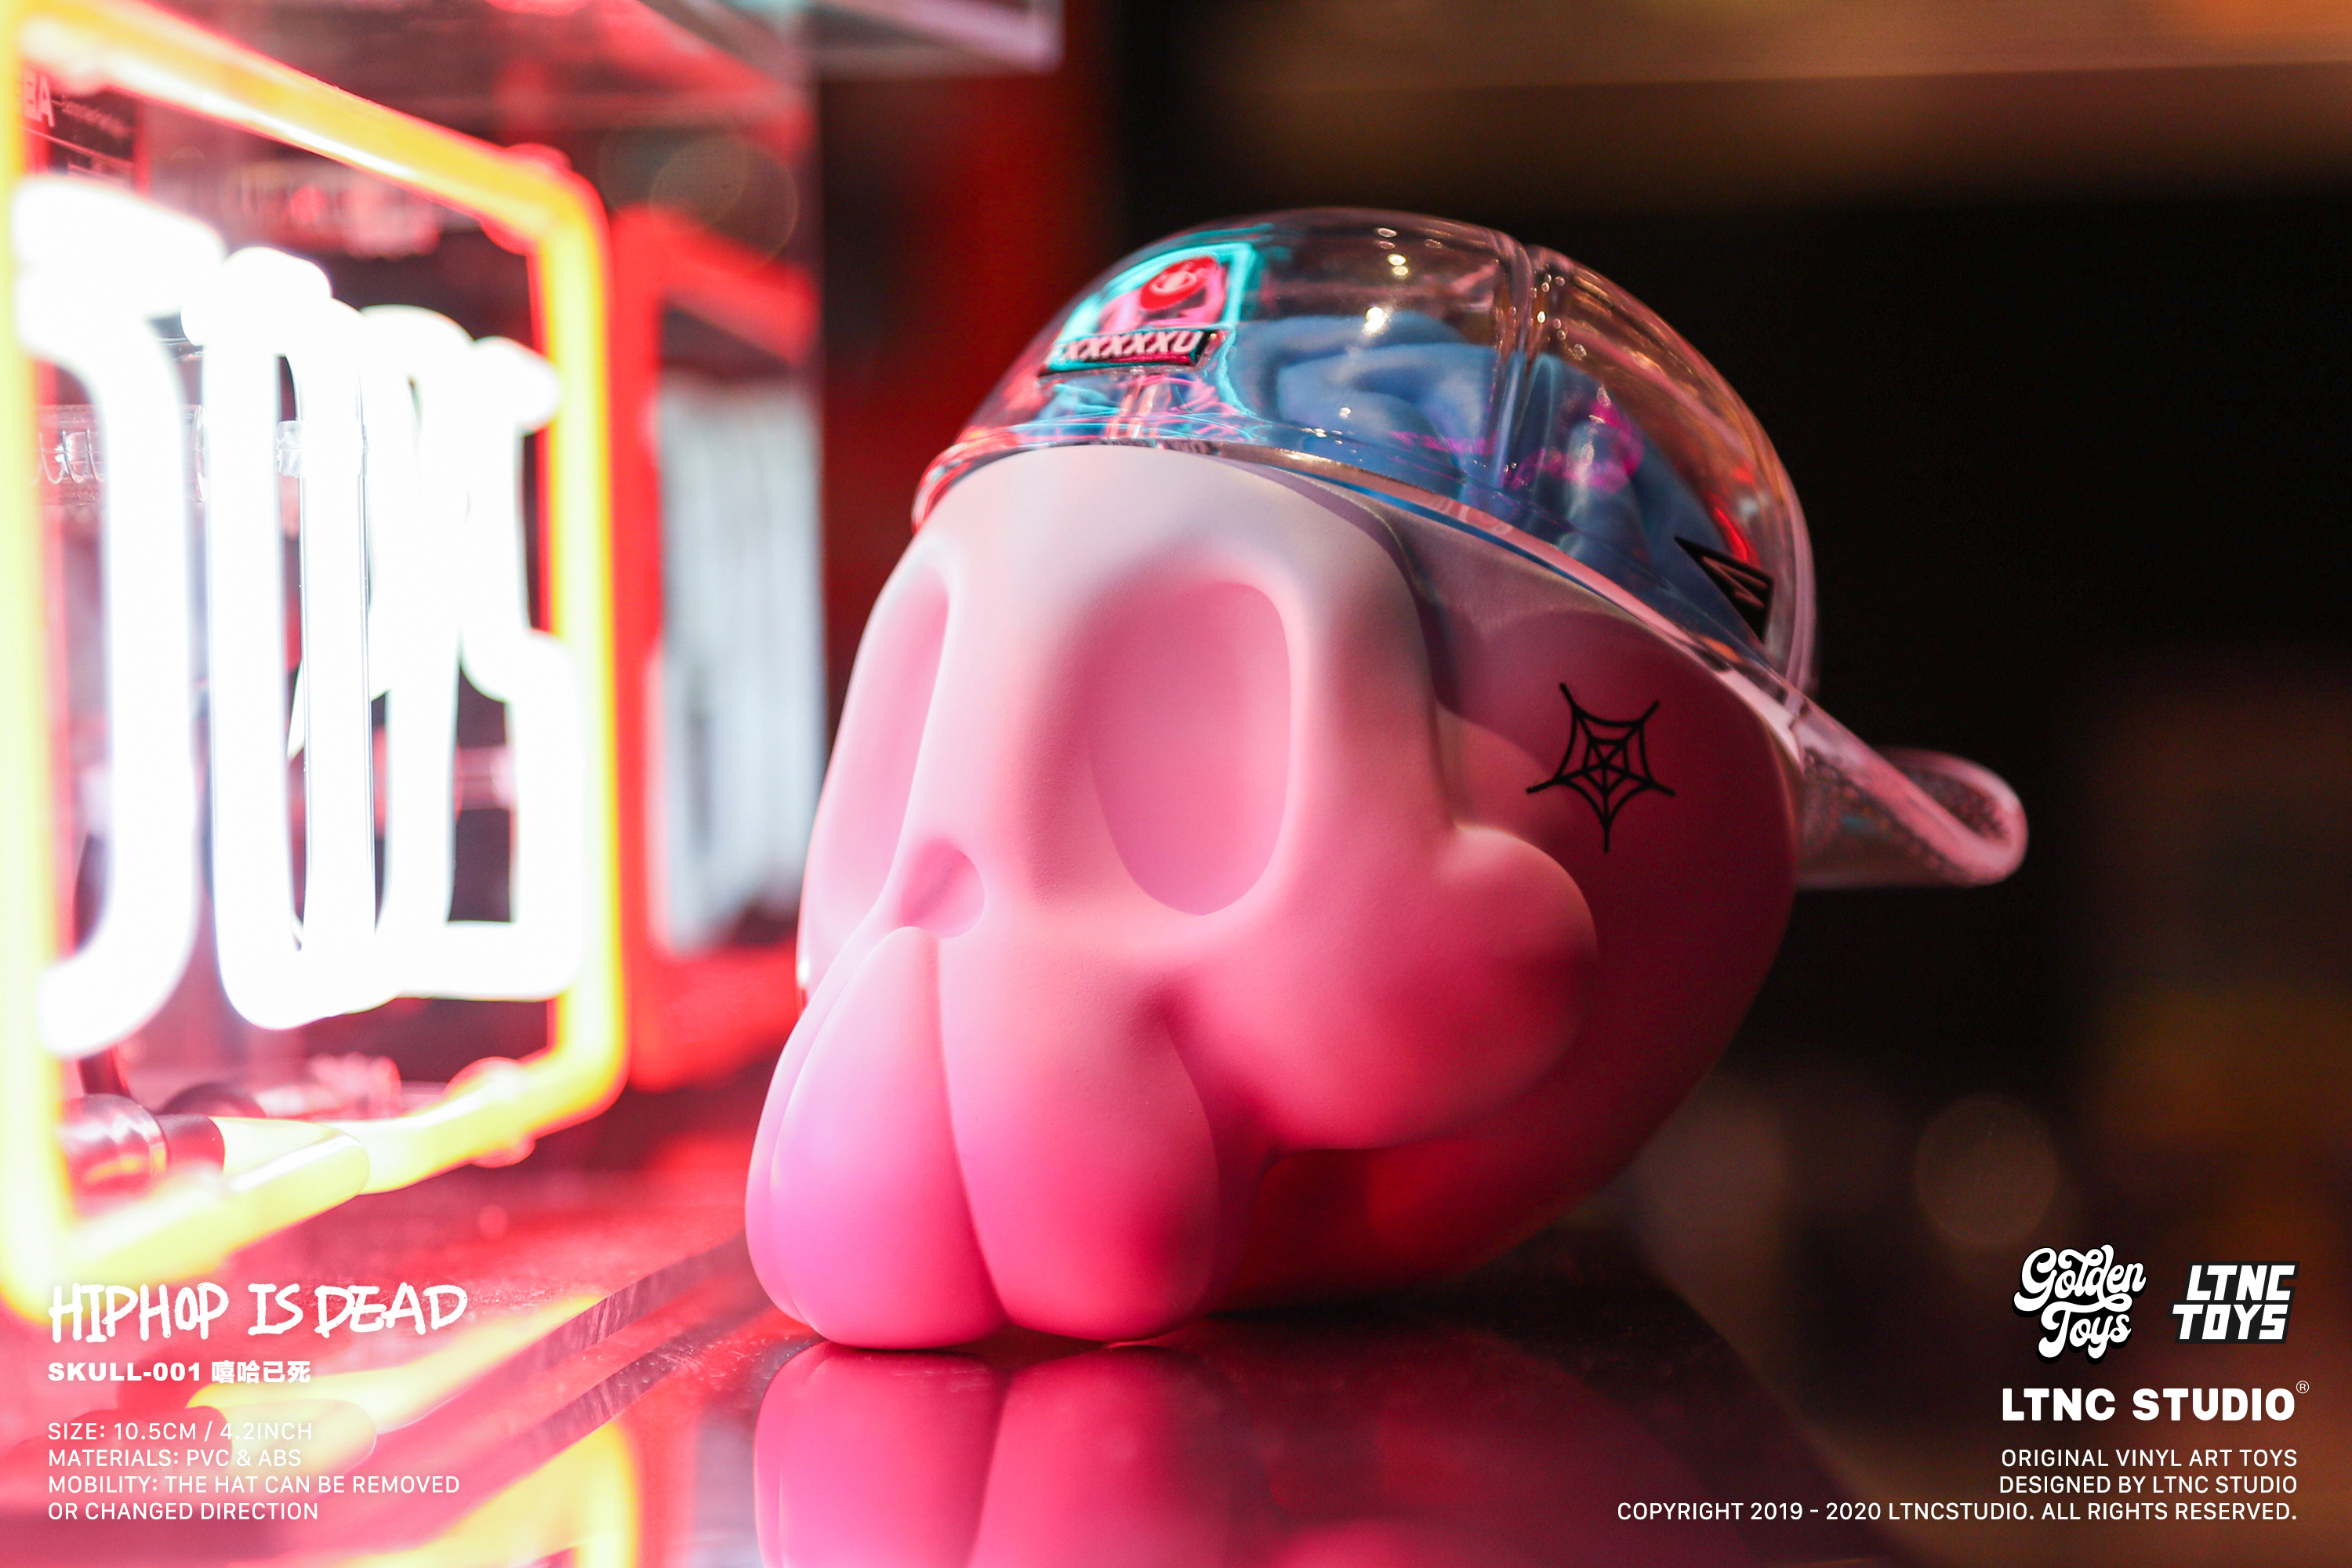 Blue and pink skull toy placed on surface pointing sideways towards neon lights